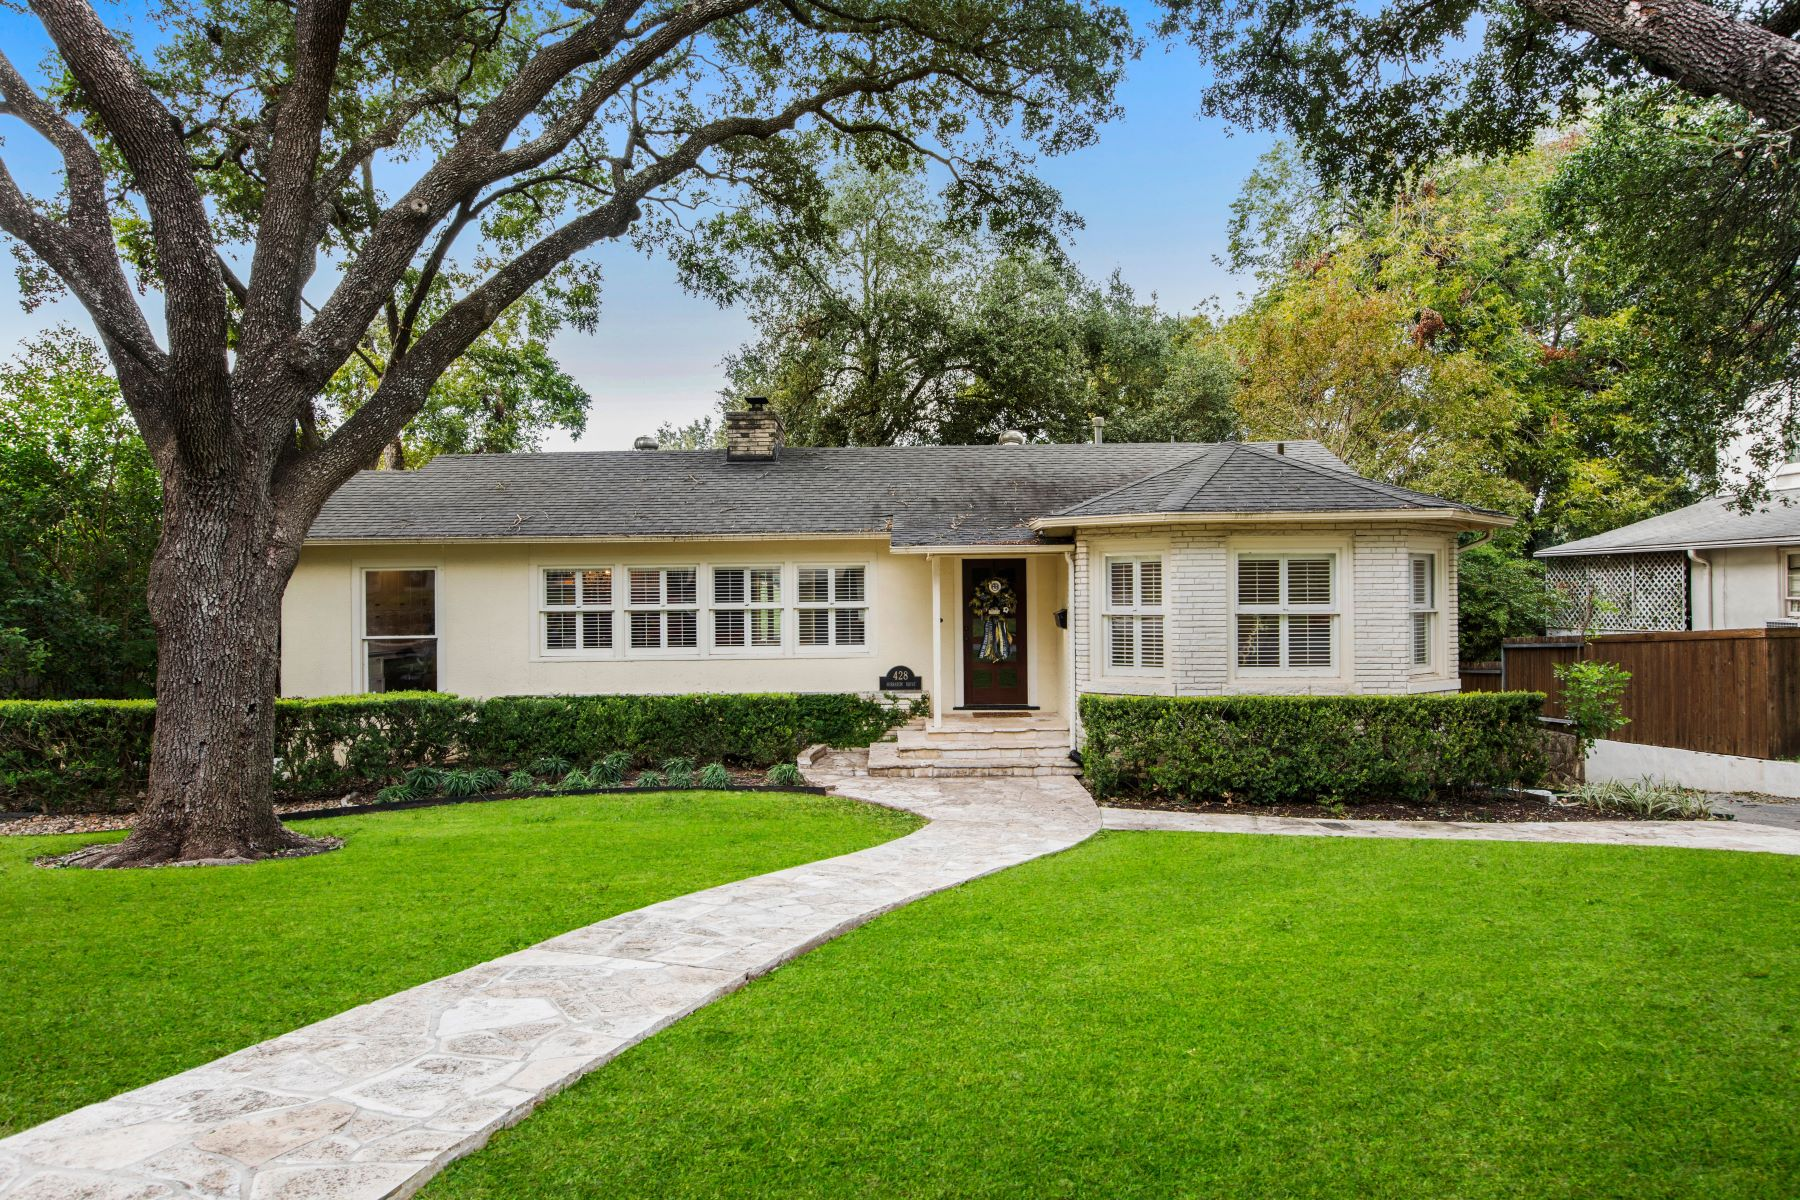 Single Family Homes for Active at Wonderful Family Home in the Heart of Terrell Hills 428 Sheraton Drive San Antonio, Texas 78209 United States